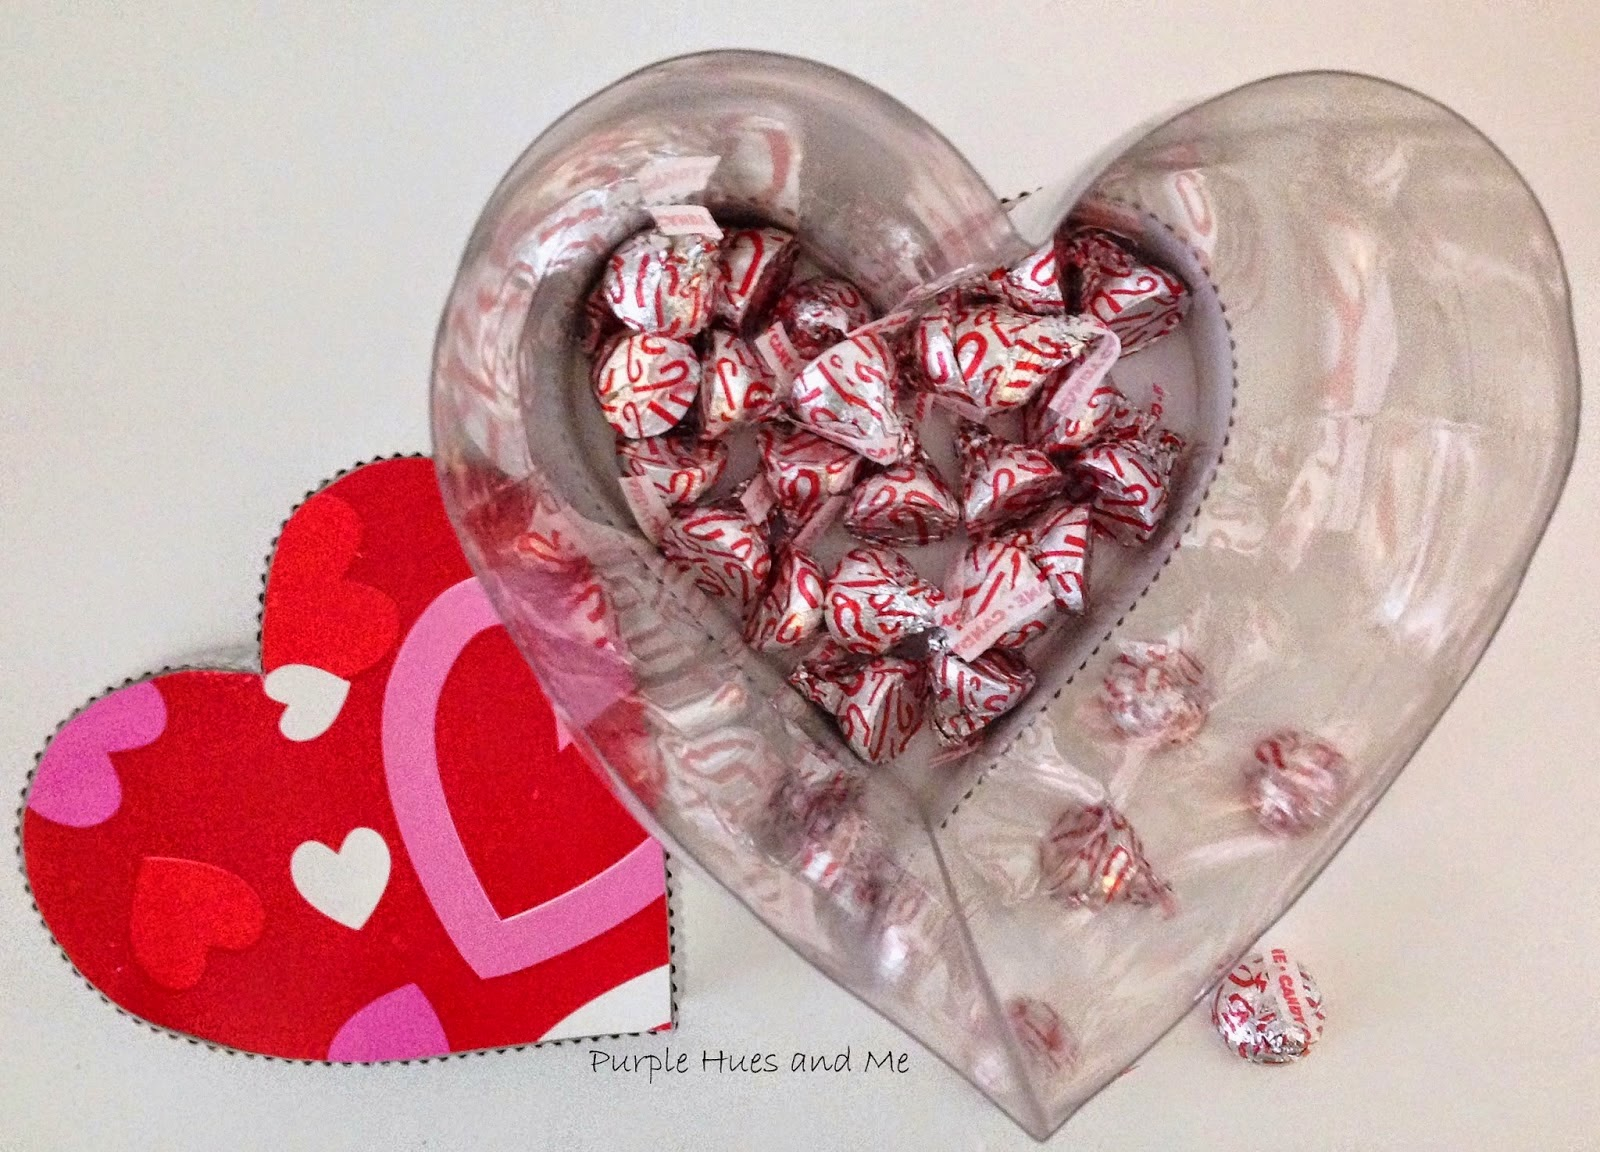 http://plumperfectandme.blogspot.com/2015/01/recycled-soda-bottle-heart-shaped-see.html